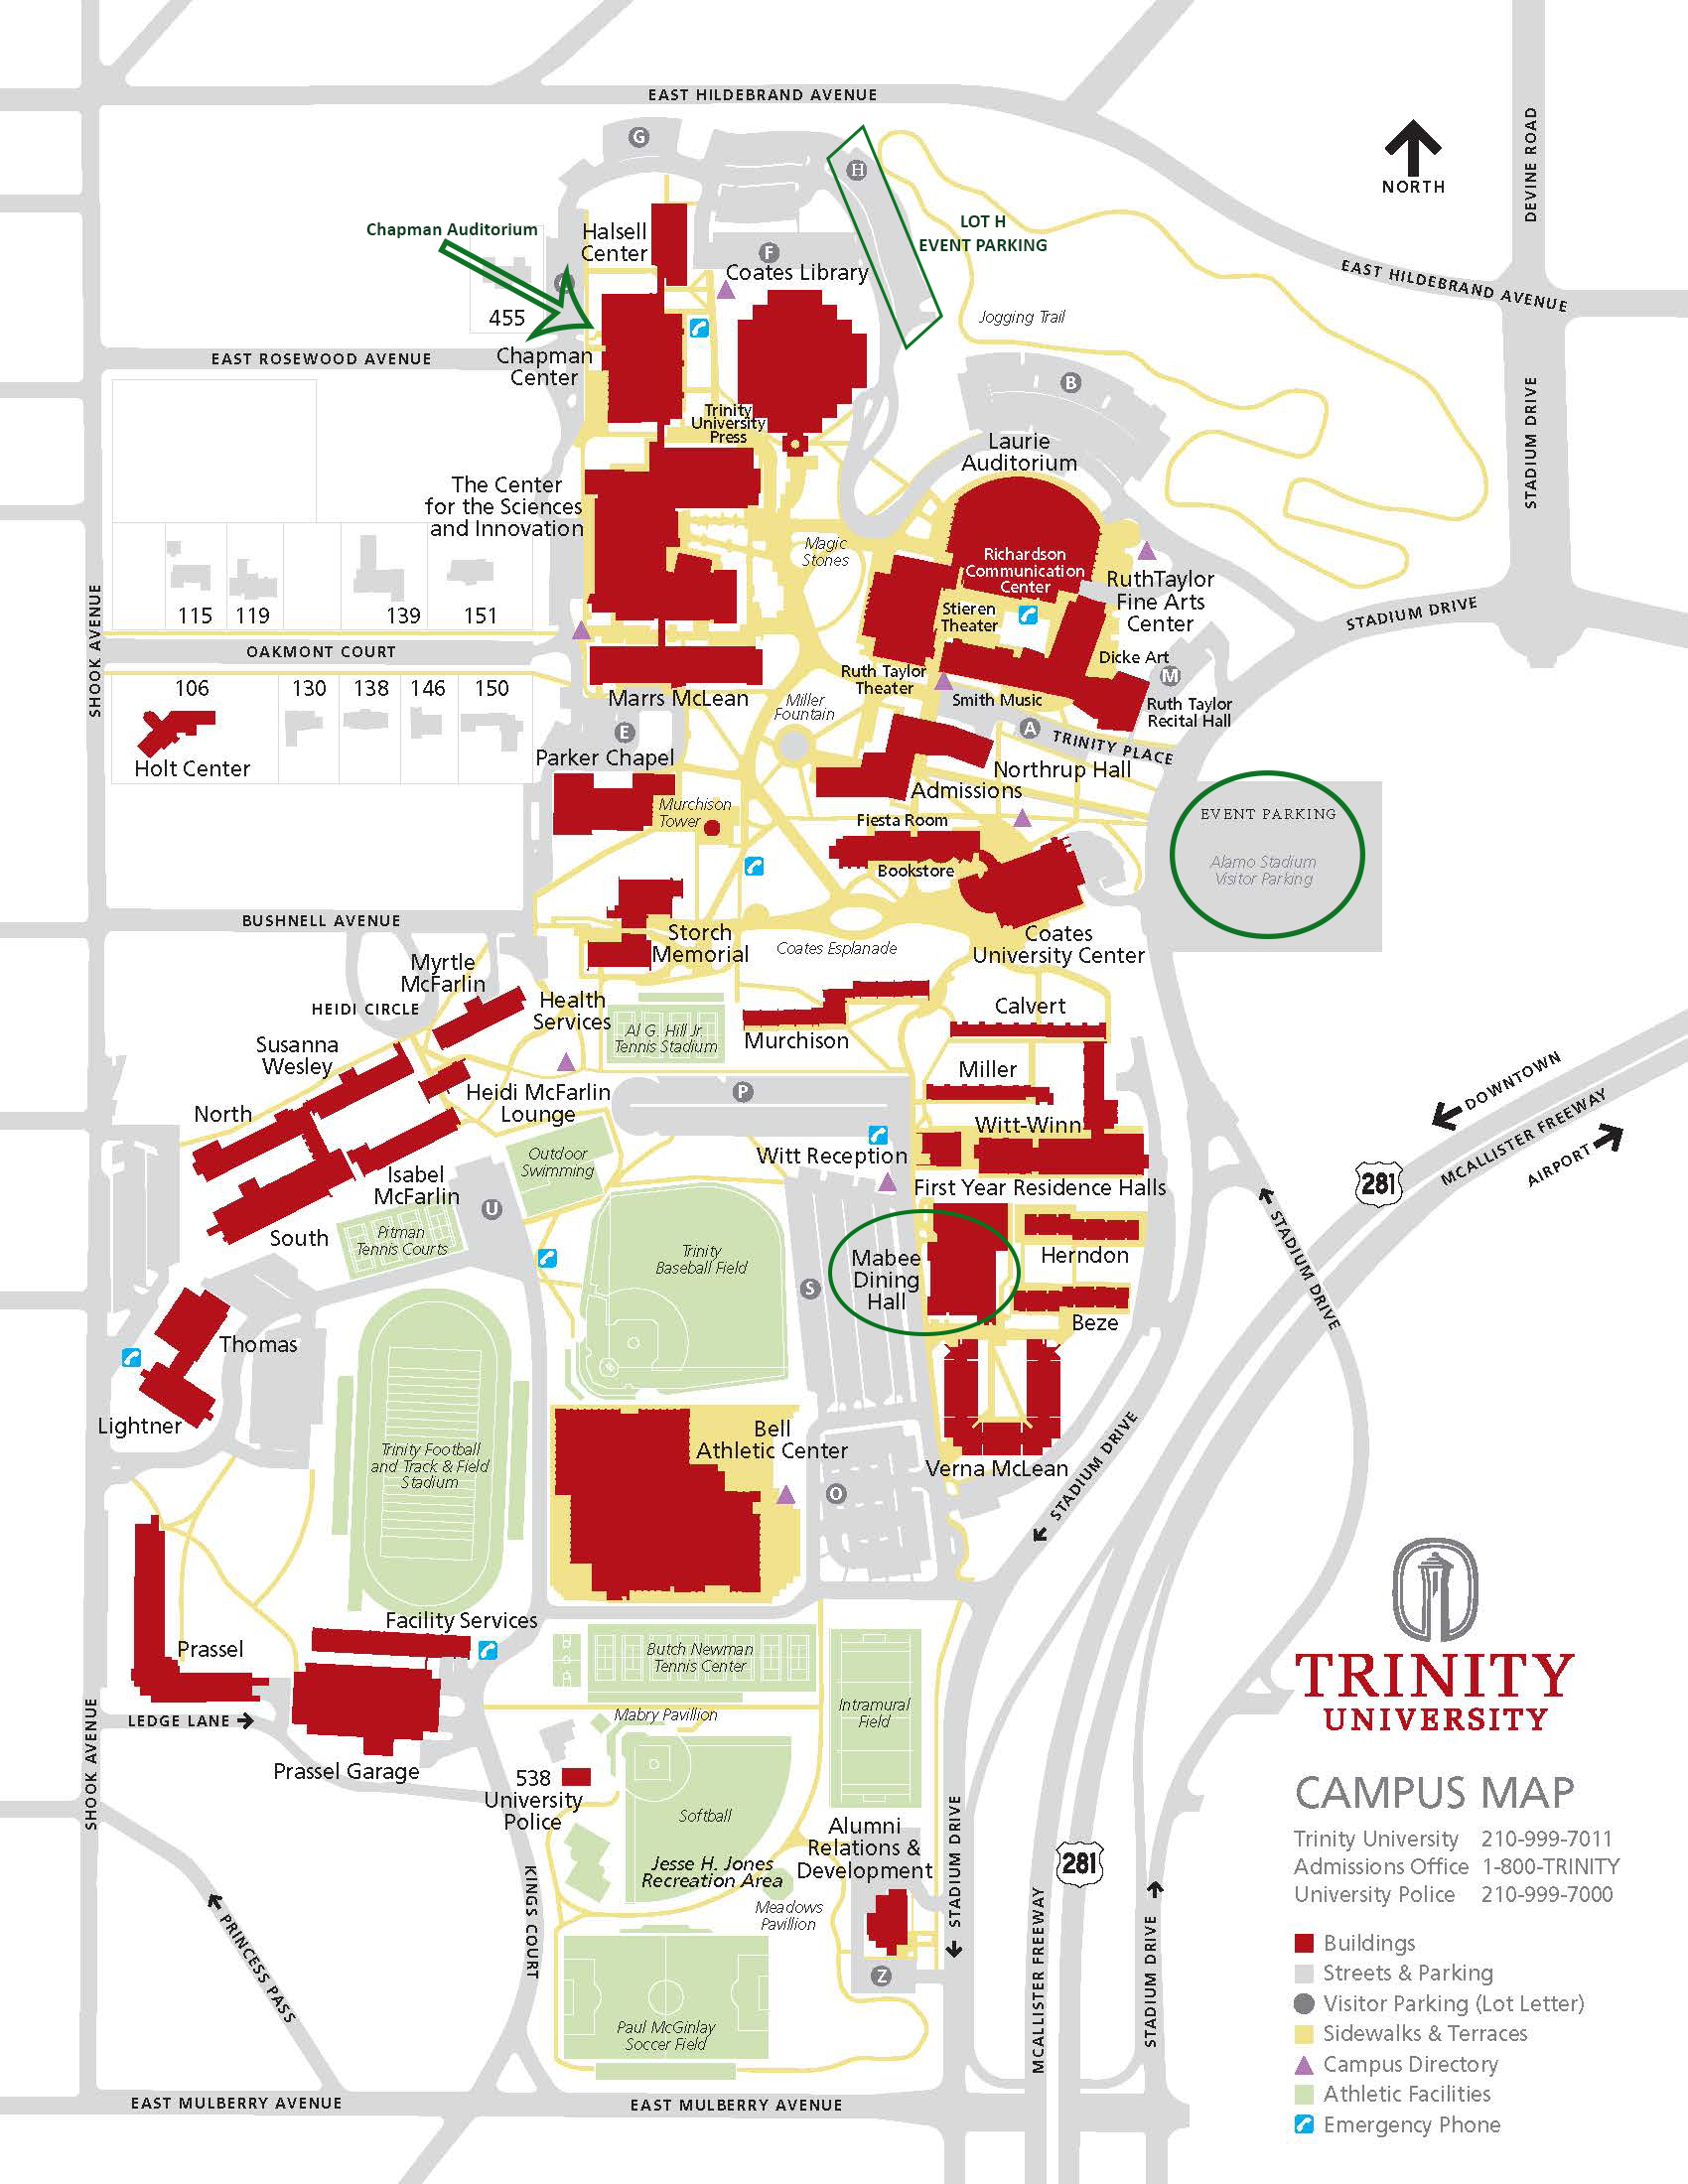 Map of the Trinity University campus. Chapman Auditorium is located near Lot H Event Parking, and next to Halsell Center and the Center for the Sciences and Innovation at Rosewood Avenue near the northwestern corner of campus.